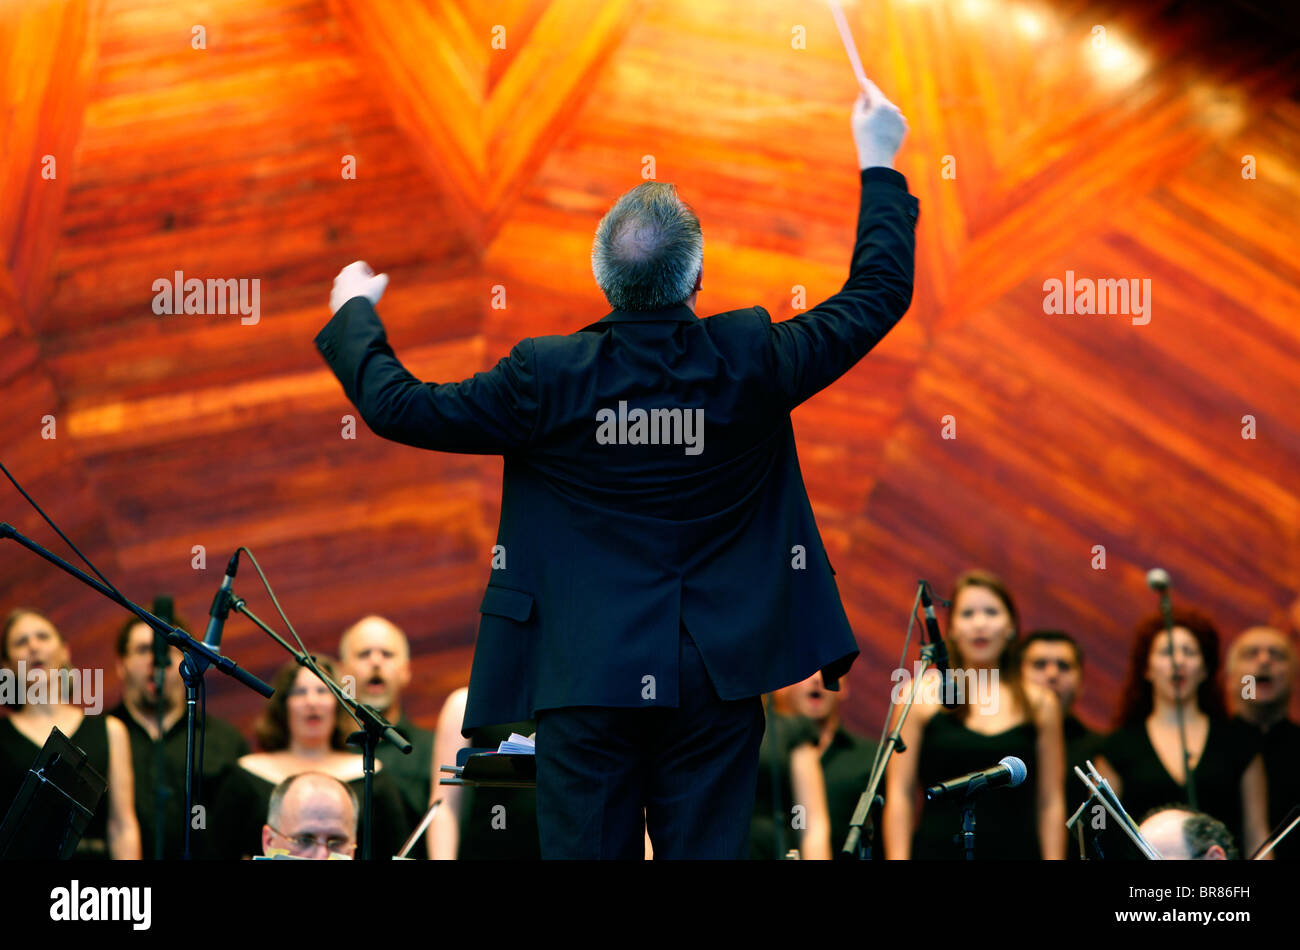 Andrew Bisantz conducts the Boston Landmarks Orchestra in a performance of Tosca during a concert at the Hatch Shell - Stock Image